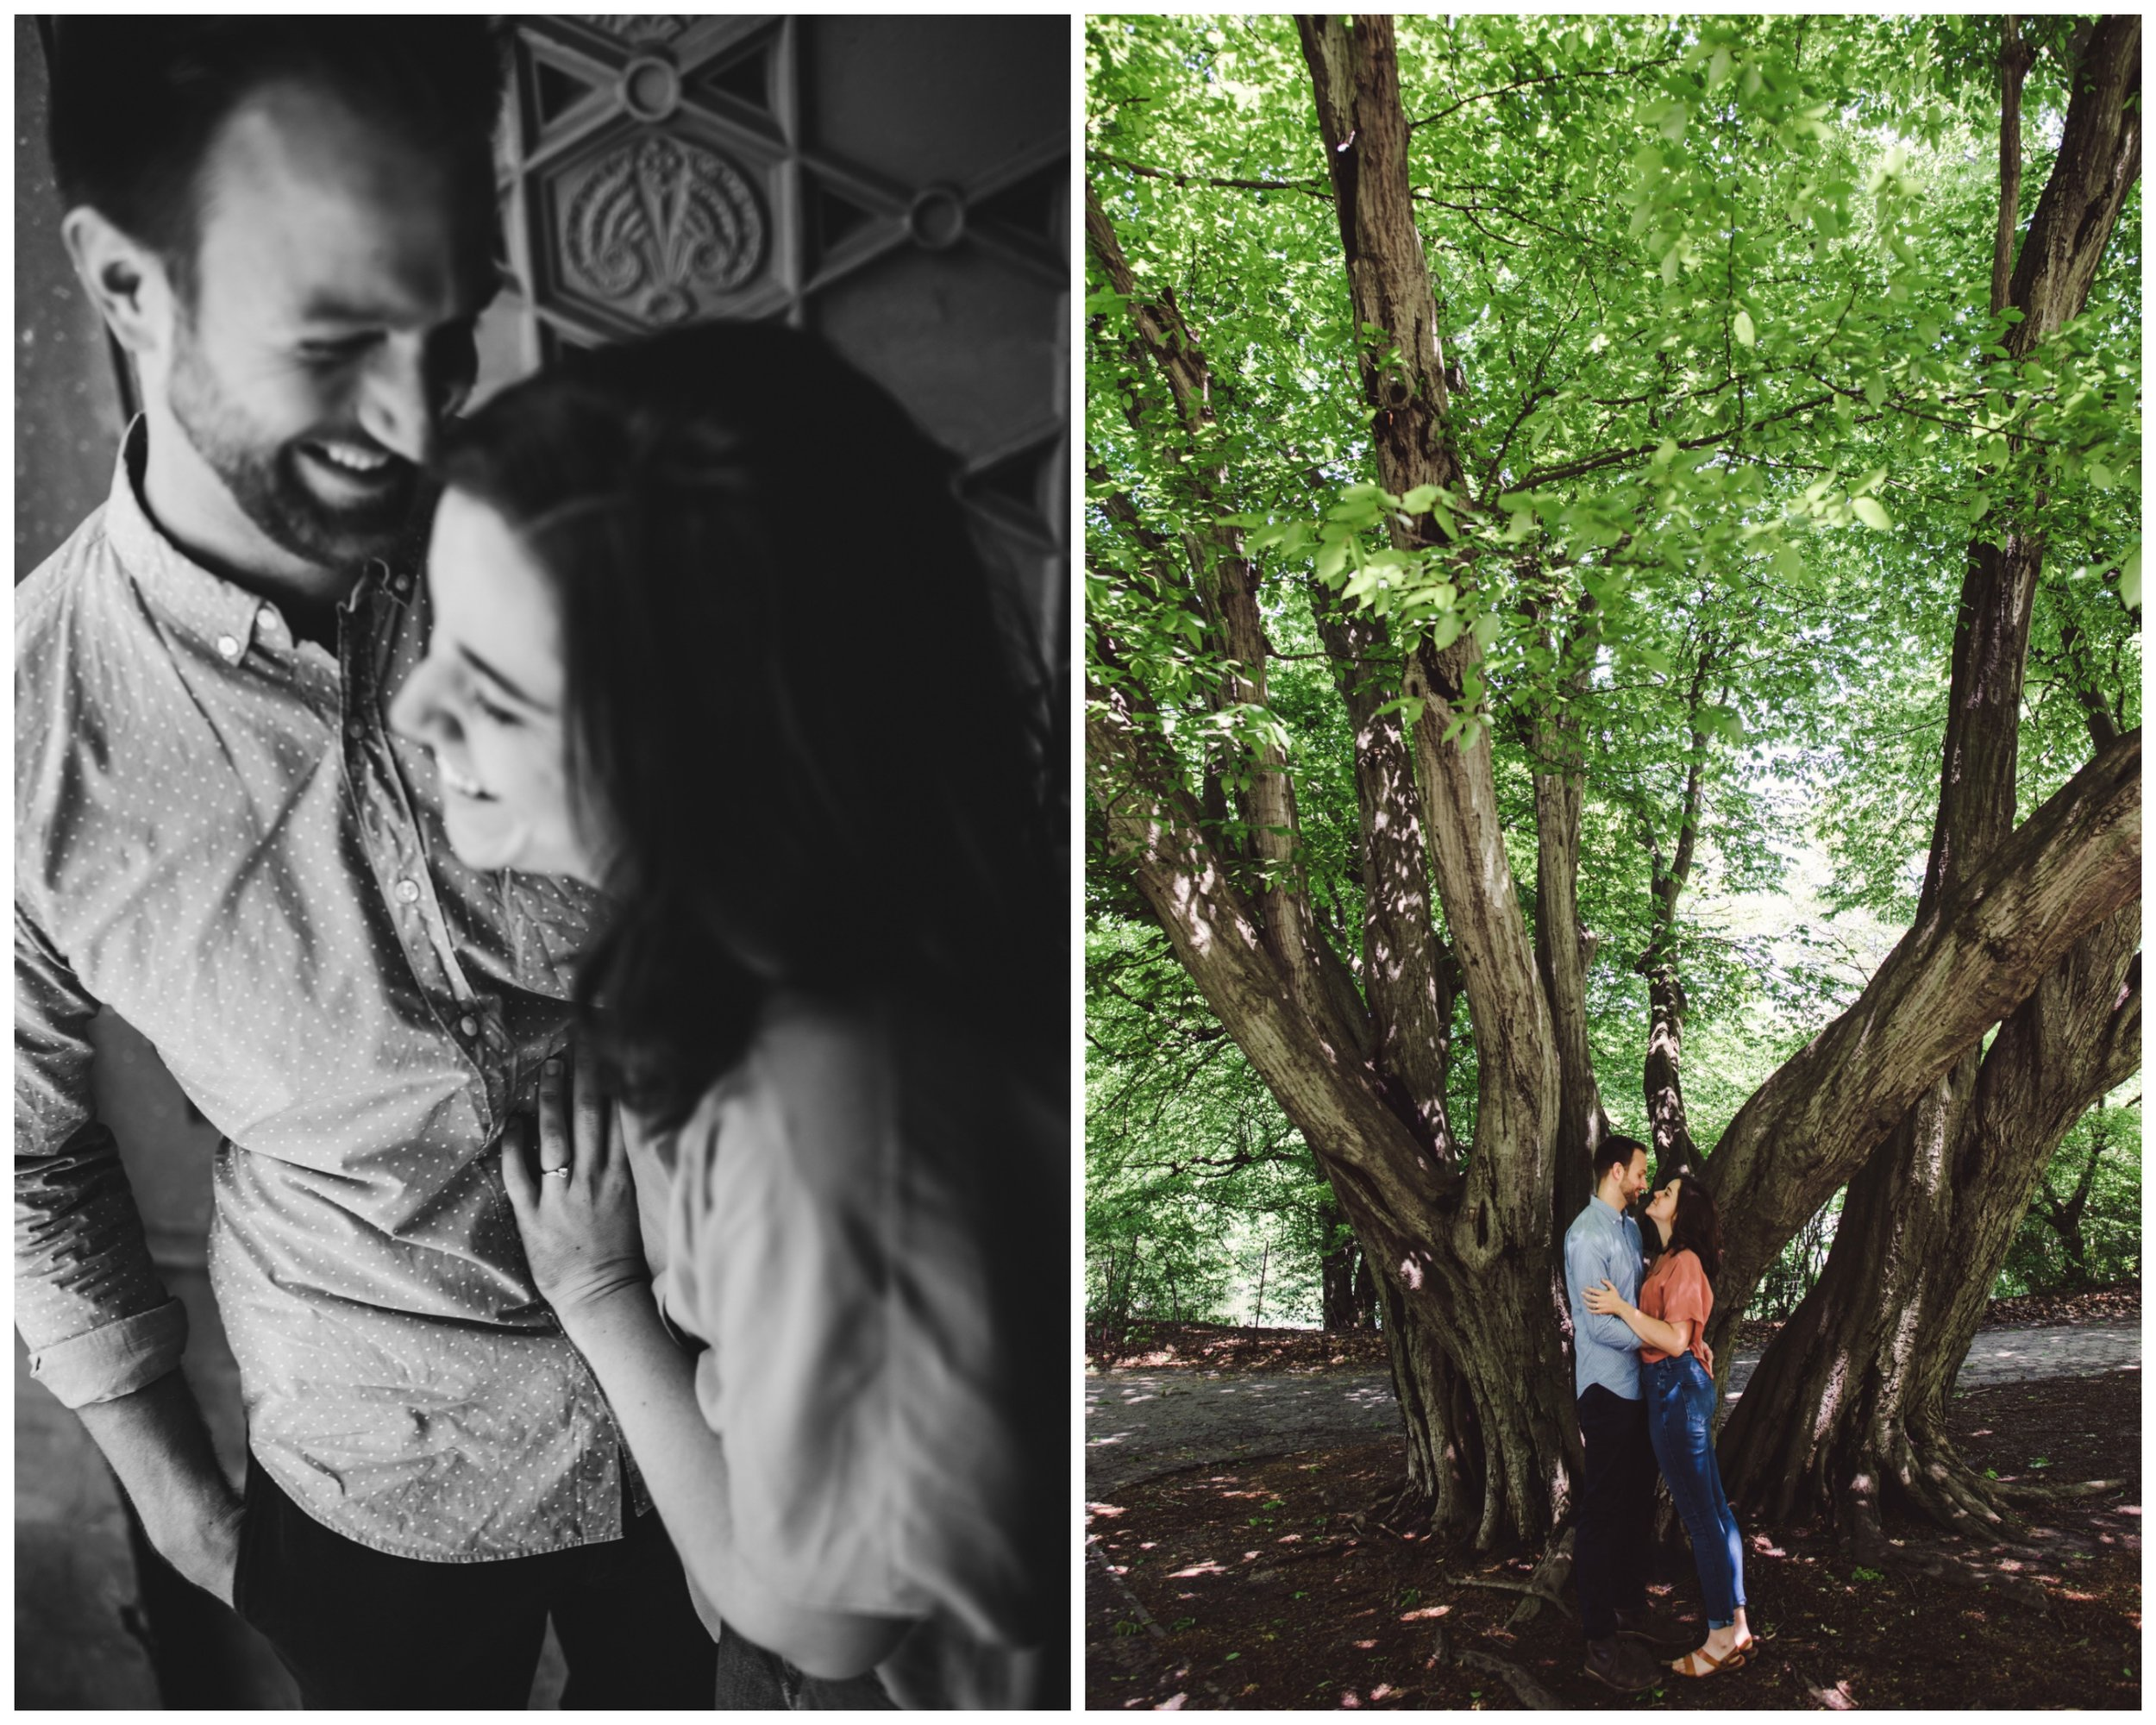 IN HOME BROOKLYN ENGAGEMENT SESSION - INTIMATE WEDDING PHOTOGRAPHER - TWOTWENTY by CHI-CHI AGBIM 3.jpg